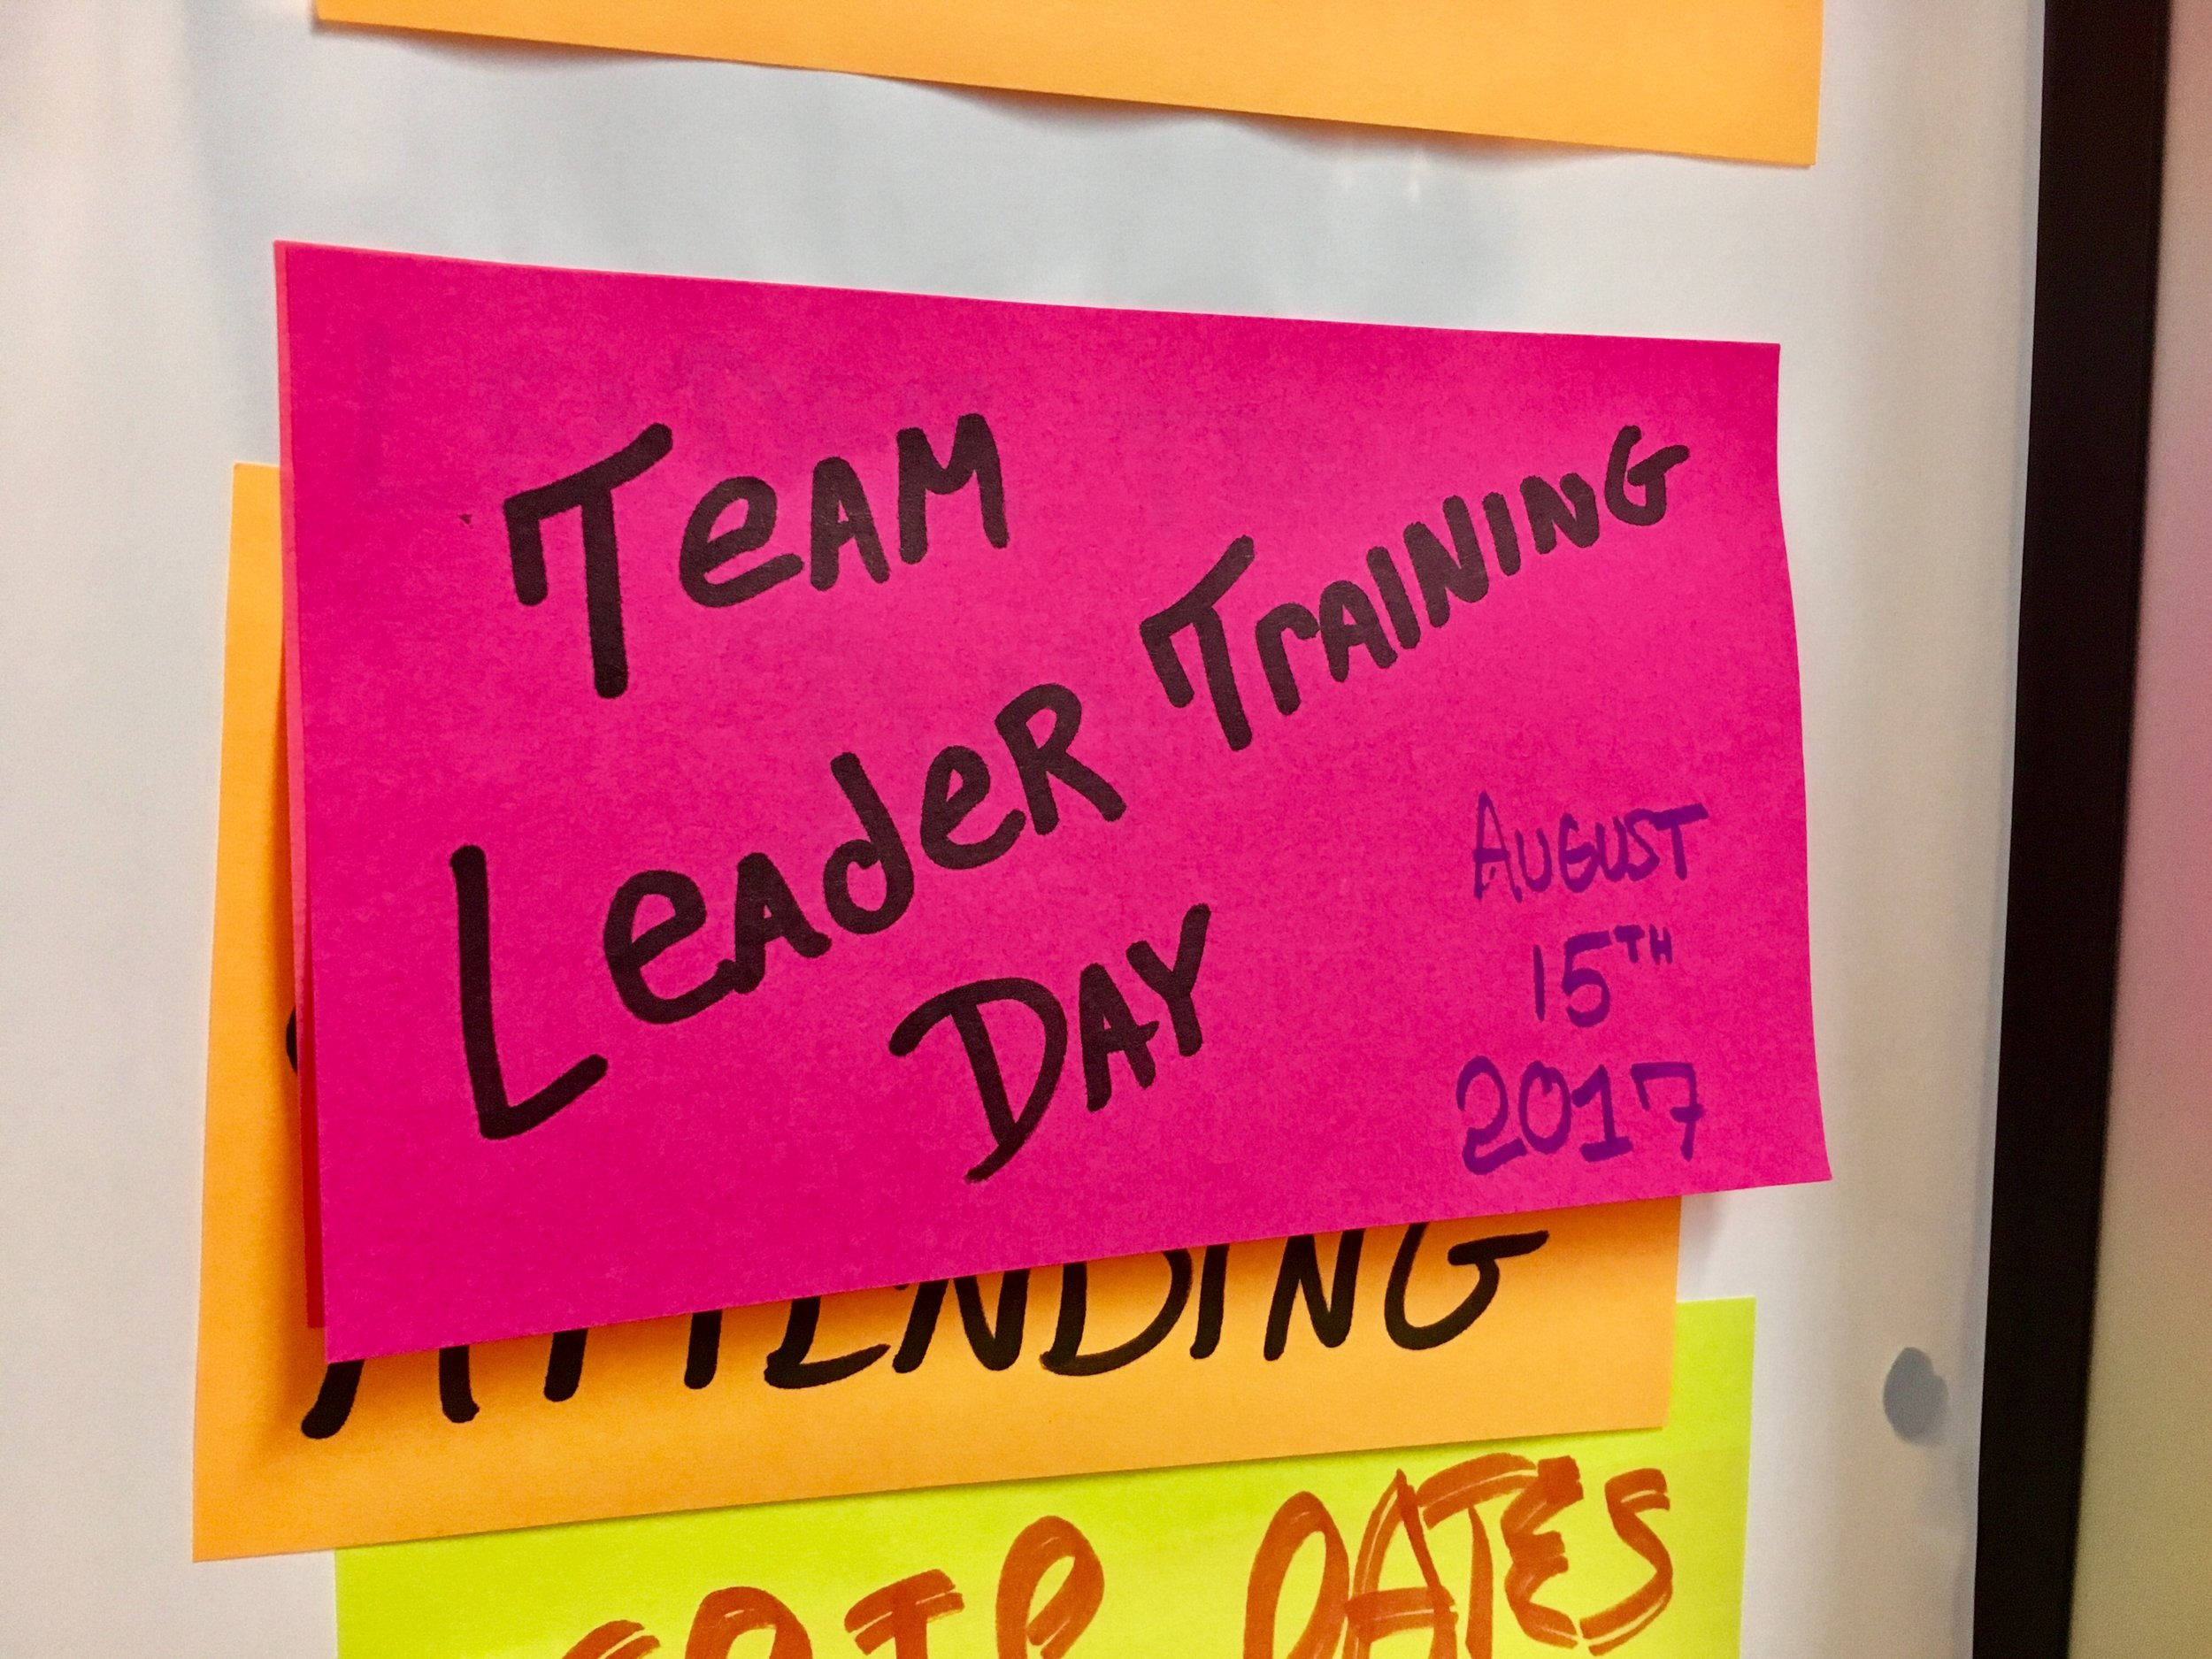 Our Team Leader Training Day kicks off Tuesday, August 15th, 2017 at our Brooklyn Office